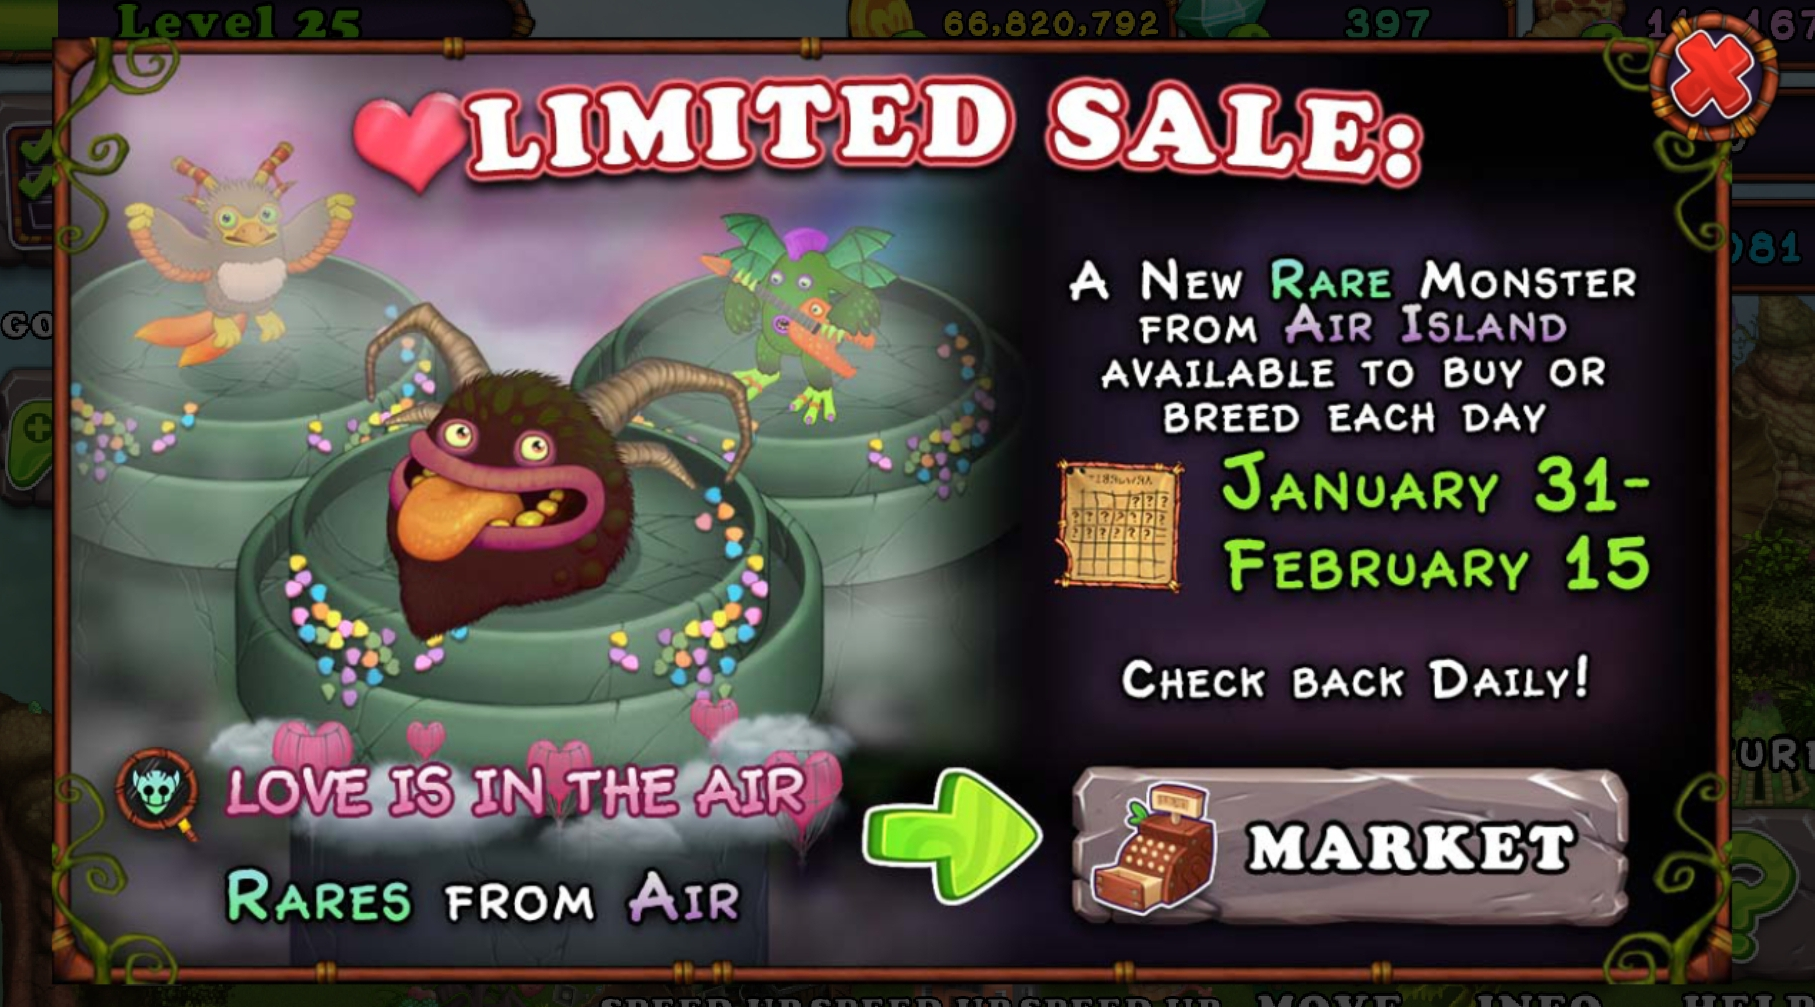 All Rare Monsters From Air Island Sale Starting Today!